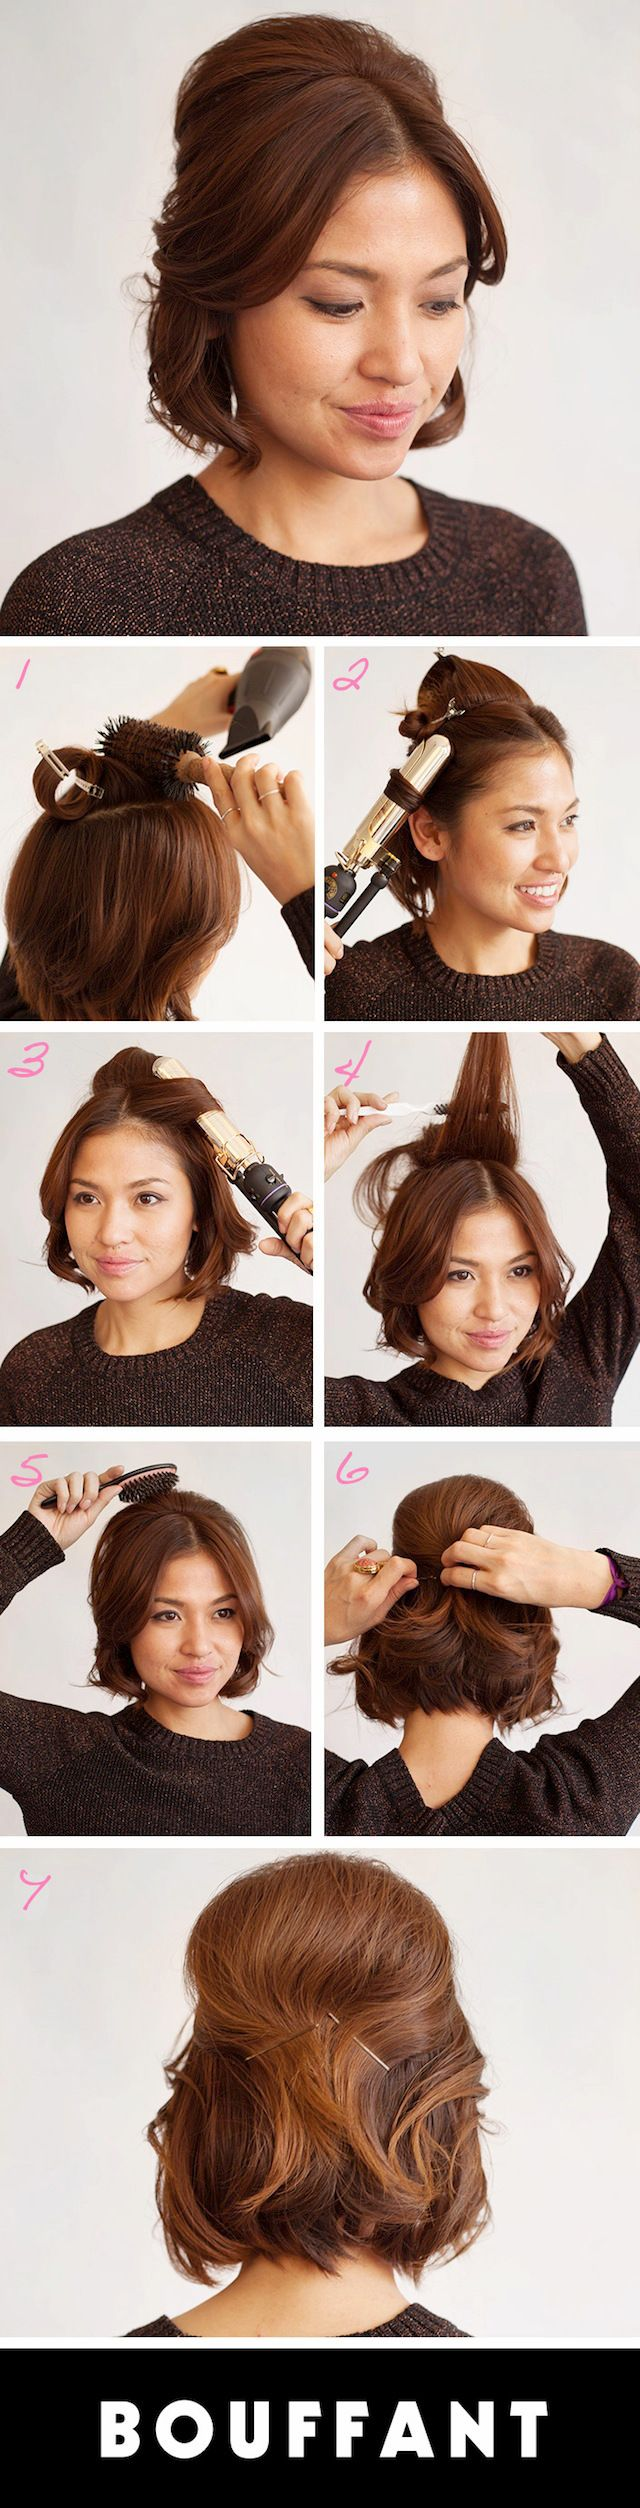 Prom hairstyles how to get the perfect retro bouffant beauty high